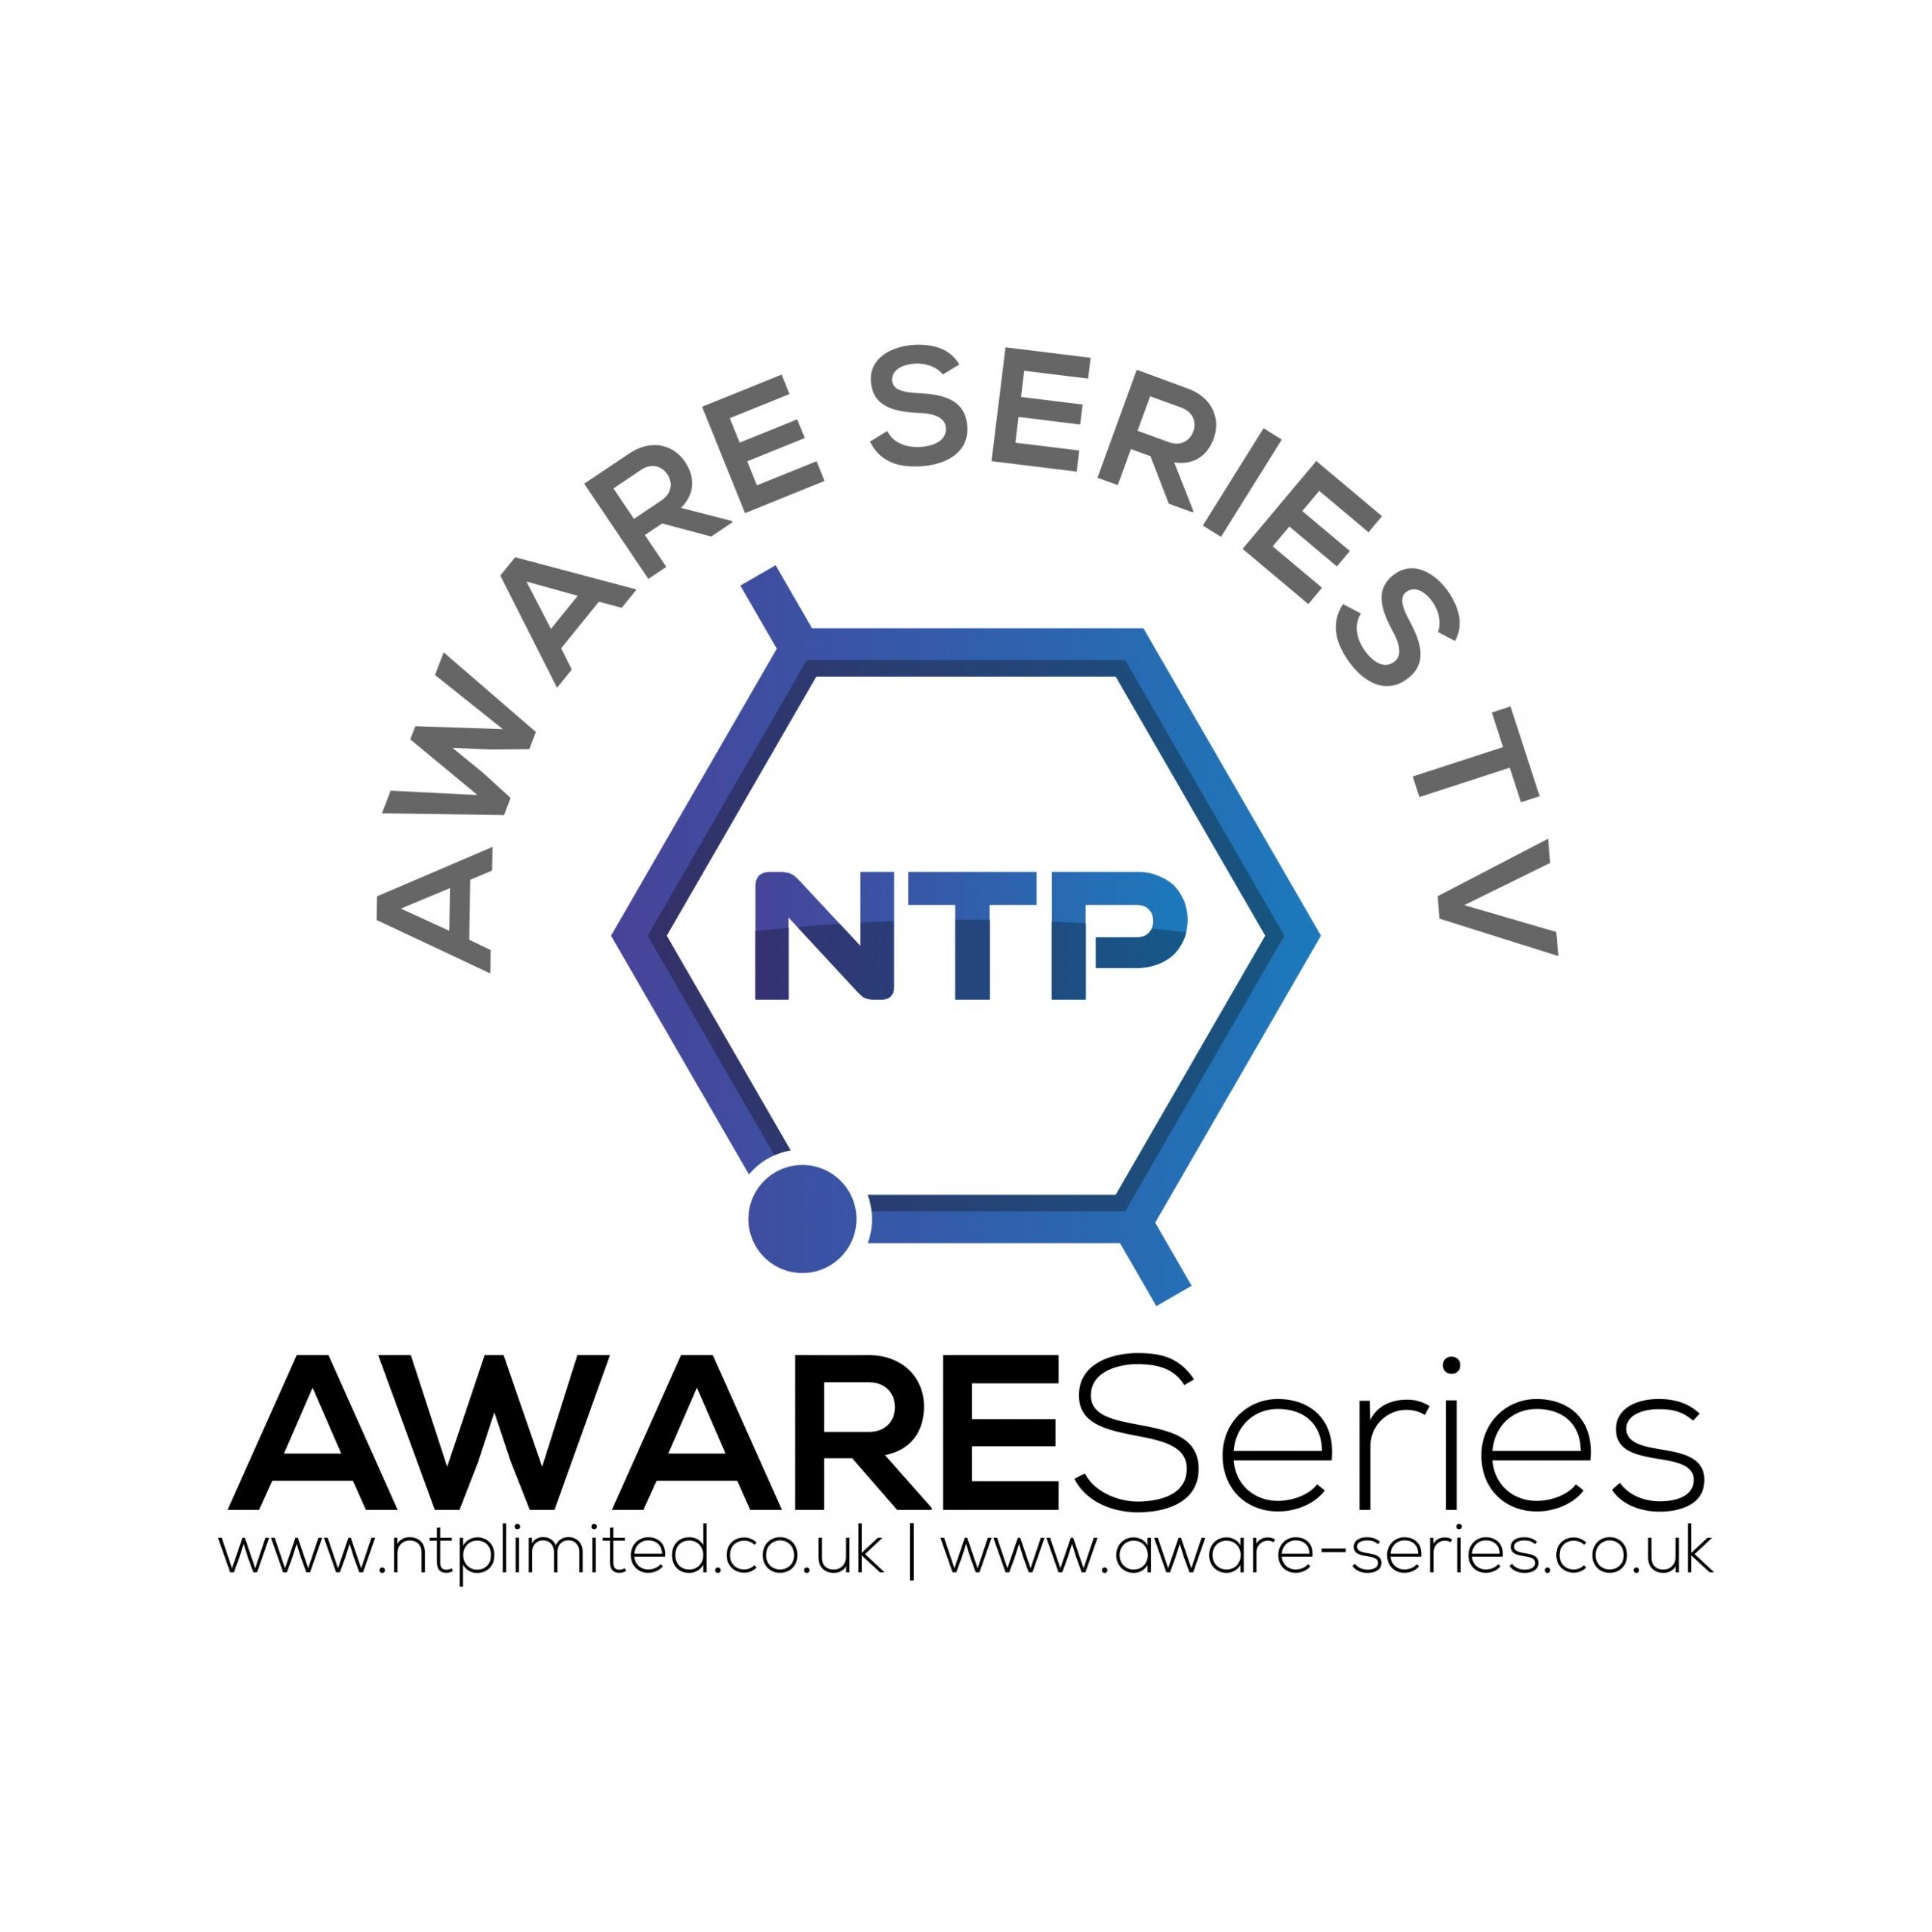 AWARE Series TV training that is setting the standard across industry